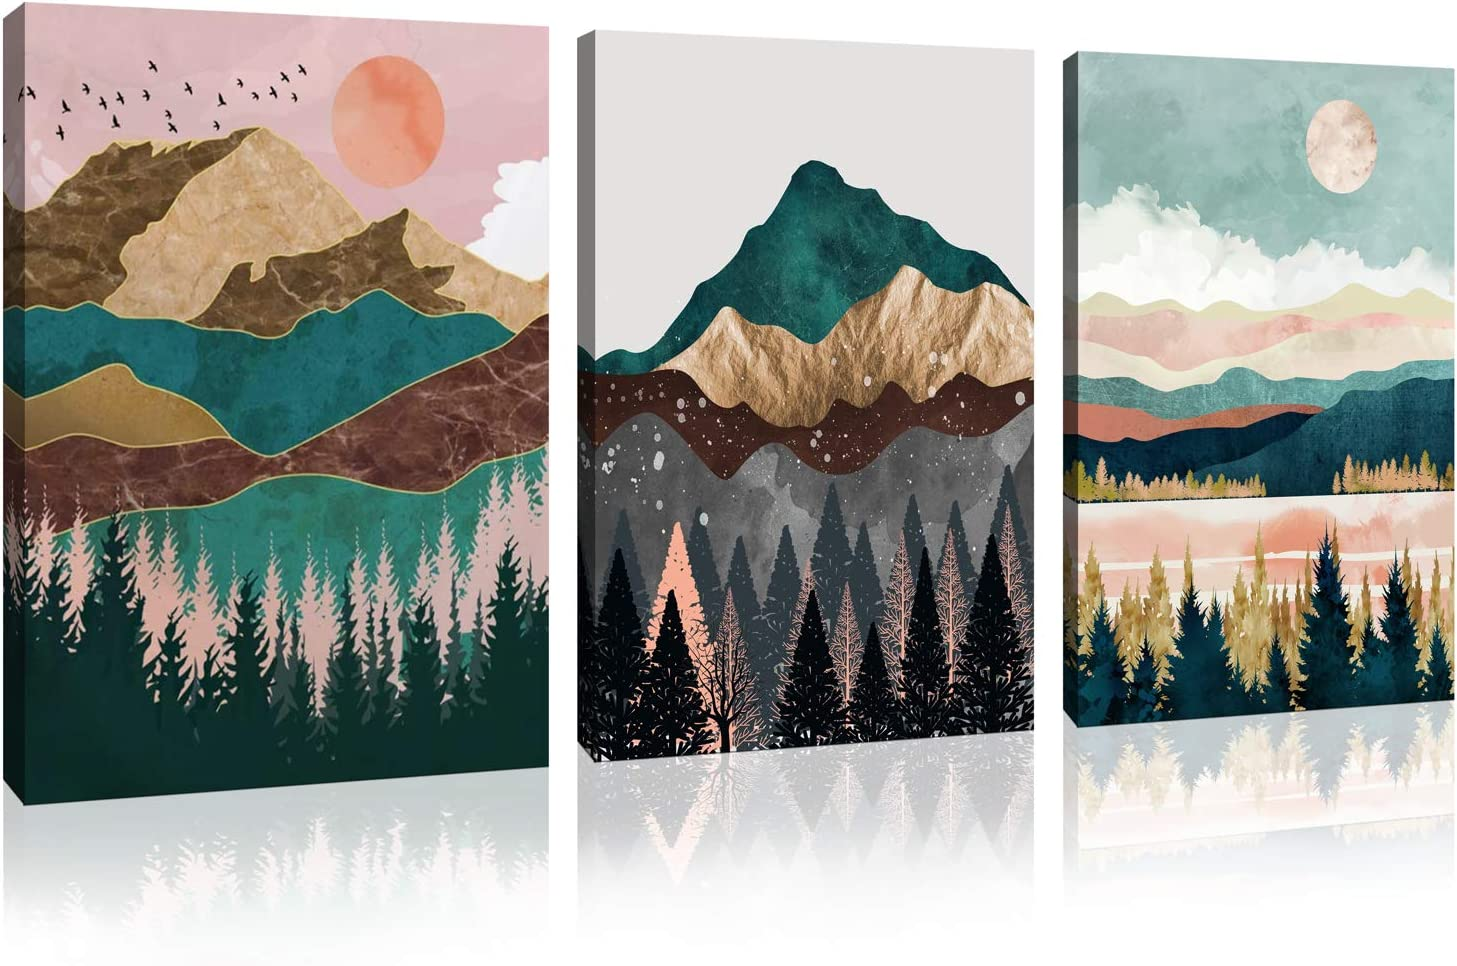 Landscape Wall Art Canvas Home Art Decoration Abstract Mountain Natural Scenery Canvas Mural Living Room, Bedroom-3 Piece Wall Decoration Framed Artwork 12x16 inches